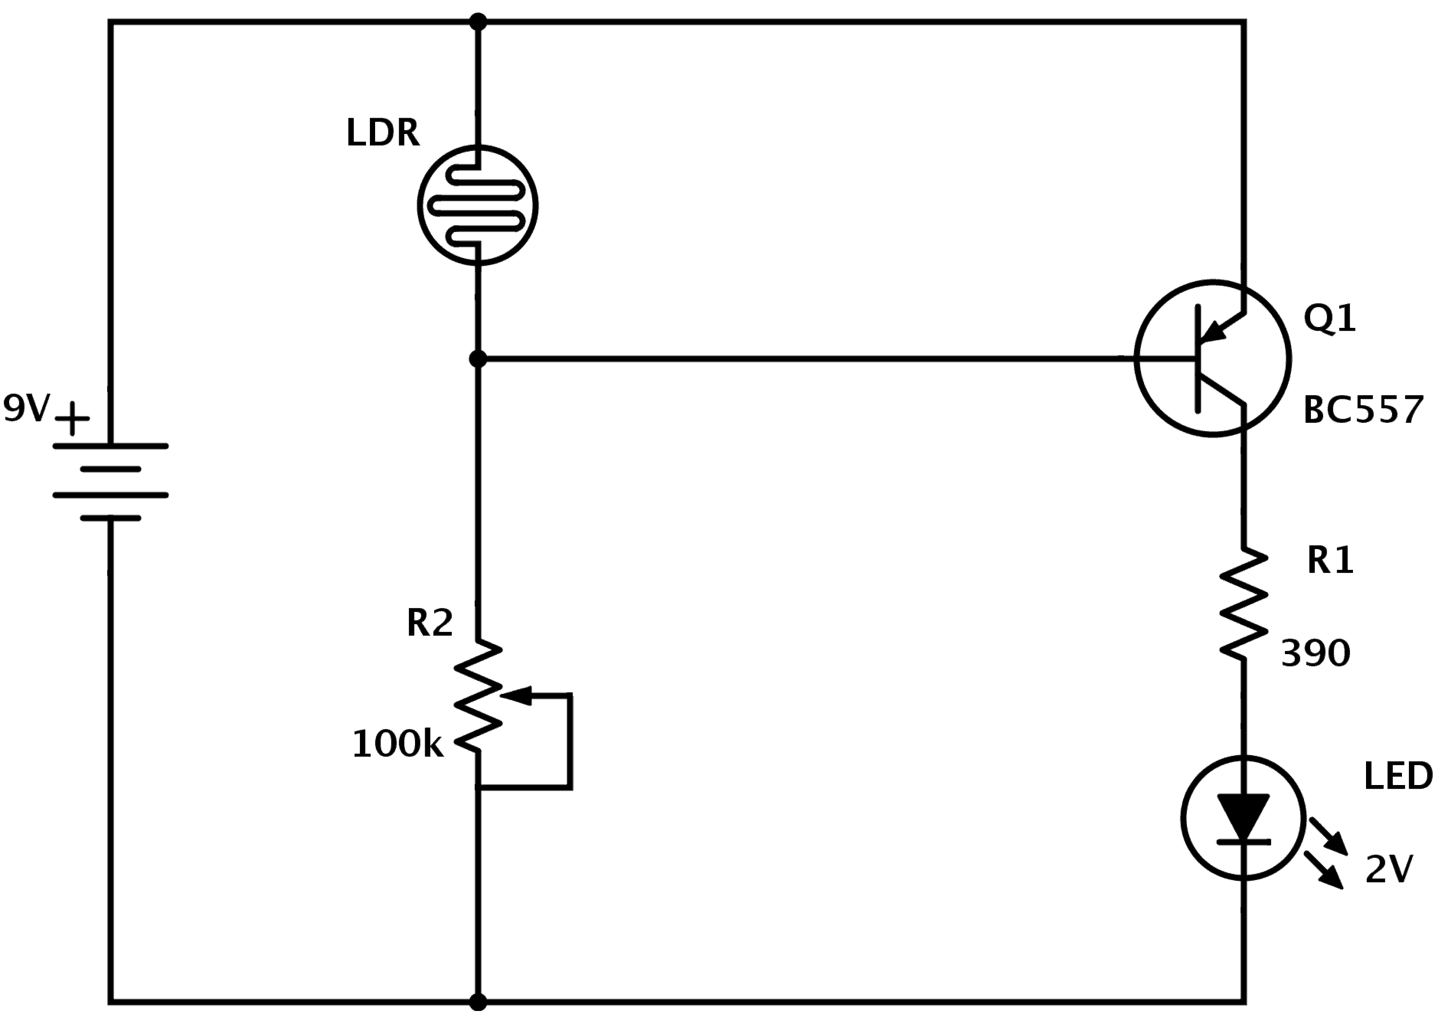 ldr circuit diagram build electronic circuits rh build electronic circuits com